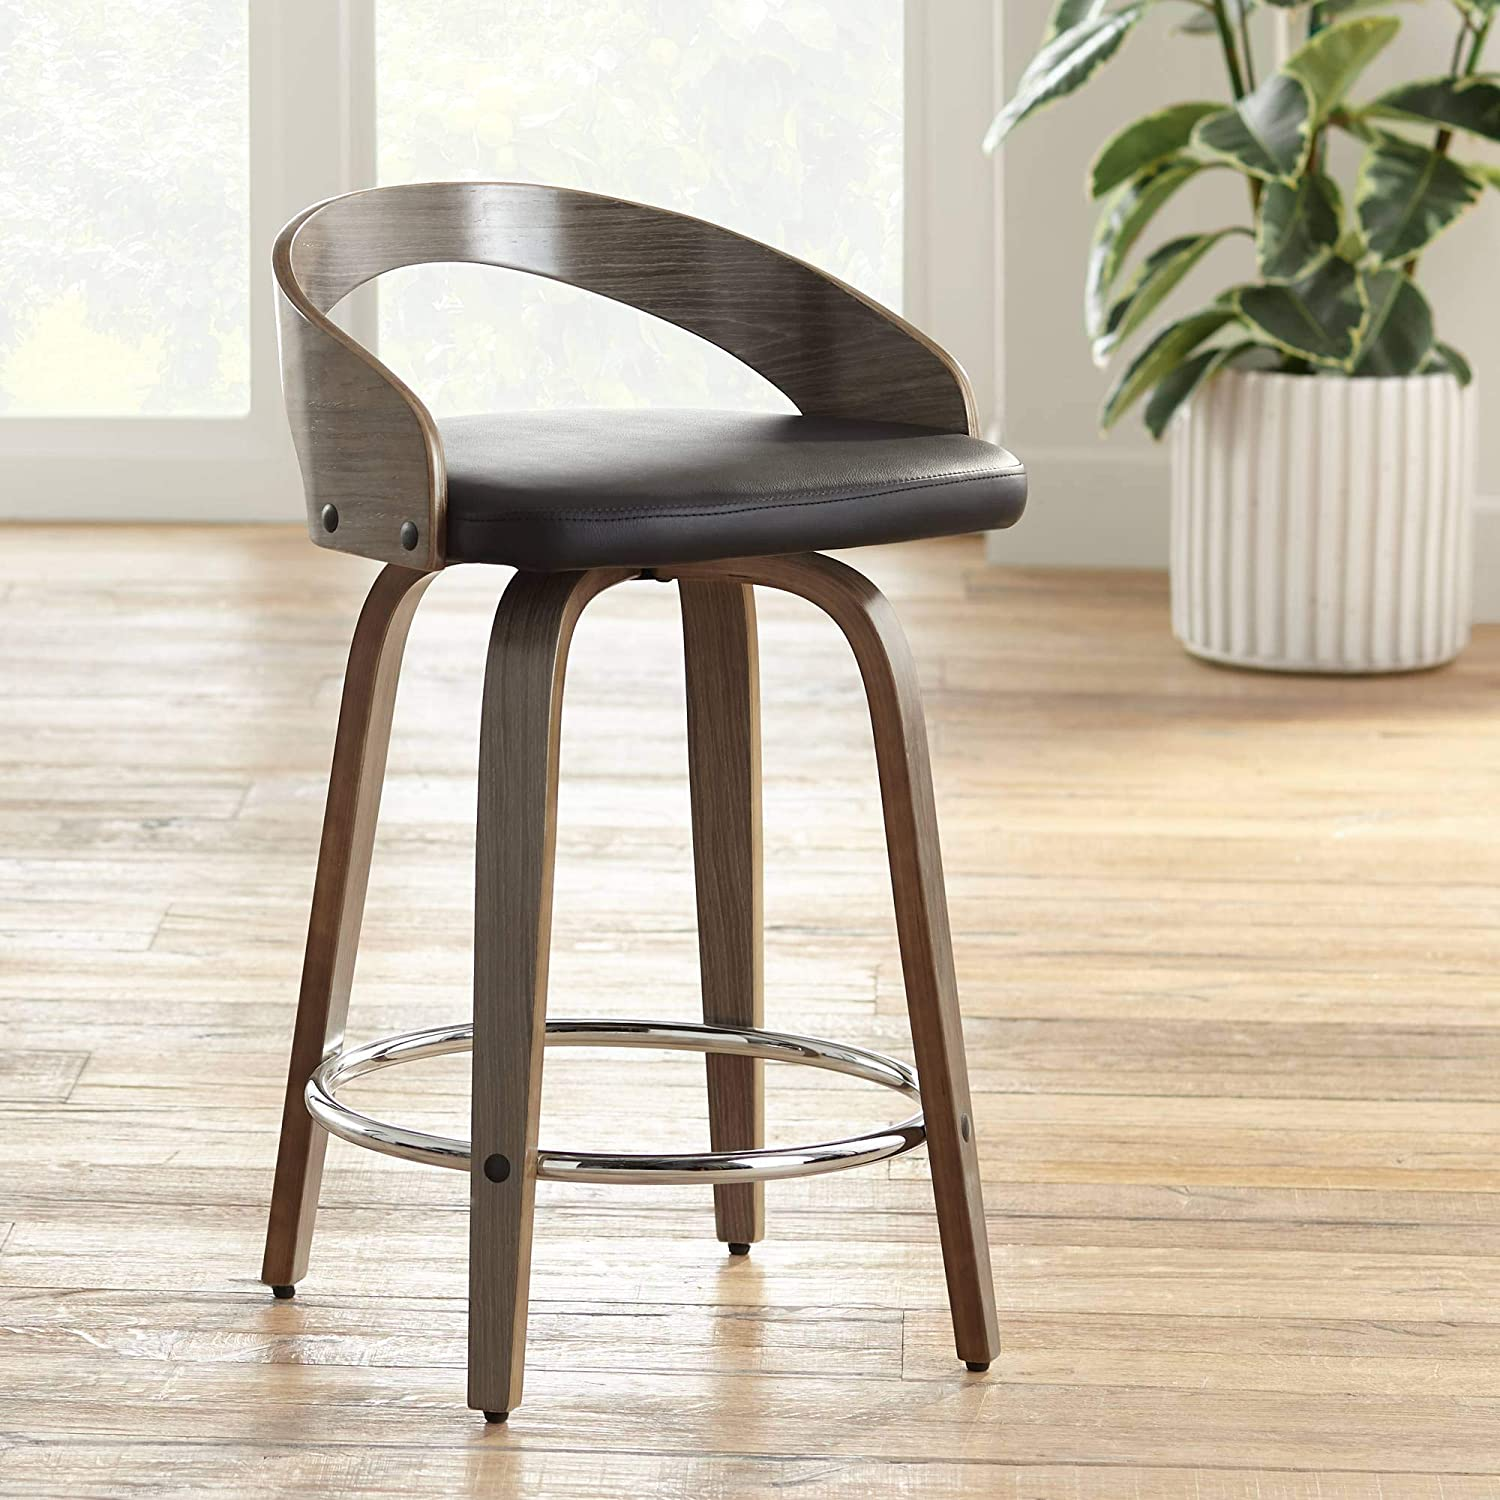 Awe Inspiring Gratto 24 Black Faux Leather Gray Wood Swivel Counter Stool Pdpeps Interior Chair Design Pdpepsorg